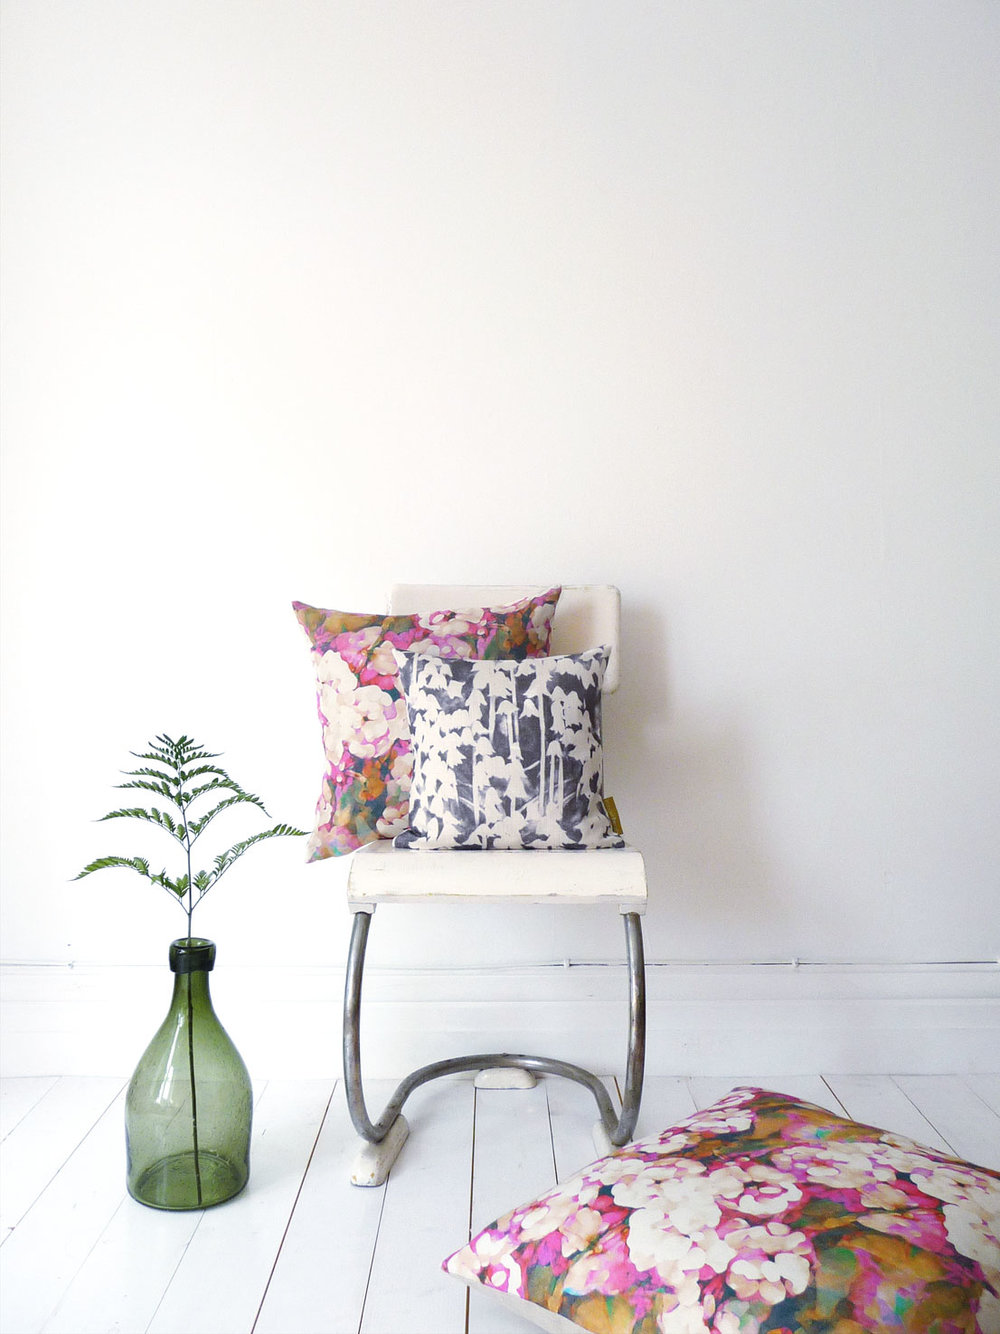 imogen-heath-cushions-Rosa-and-bluebell.jpg